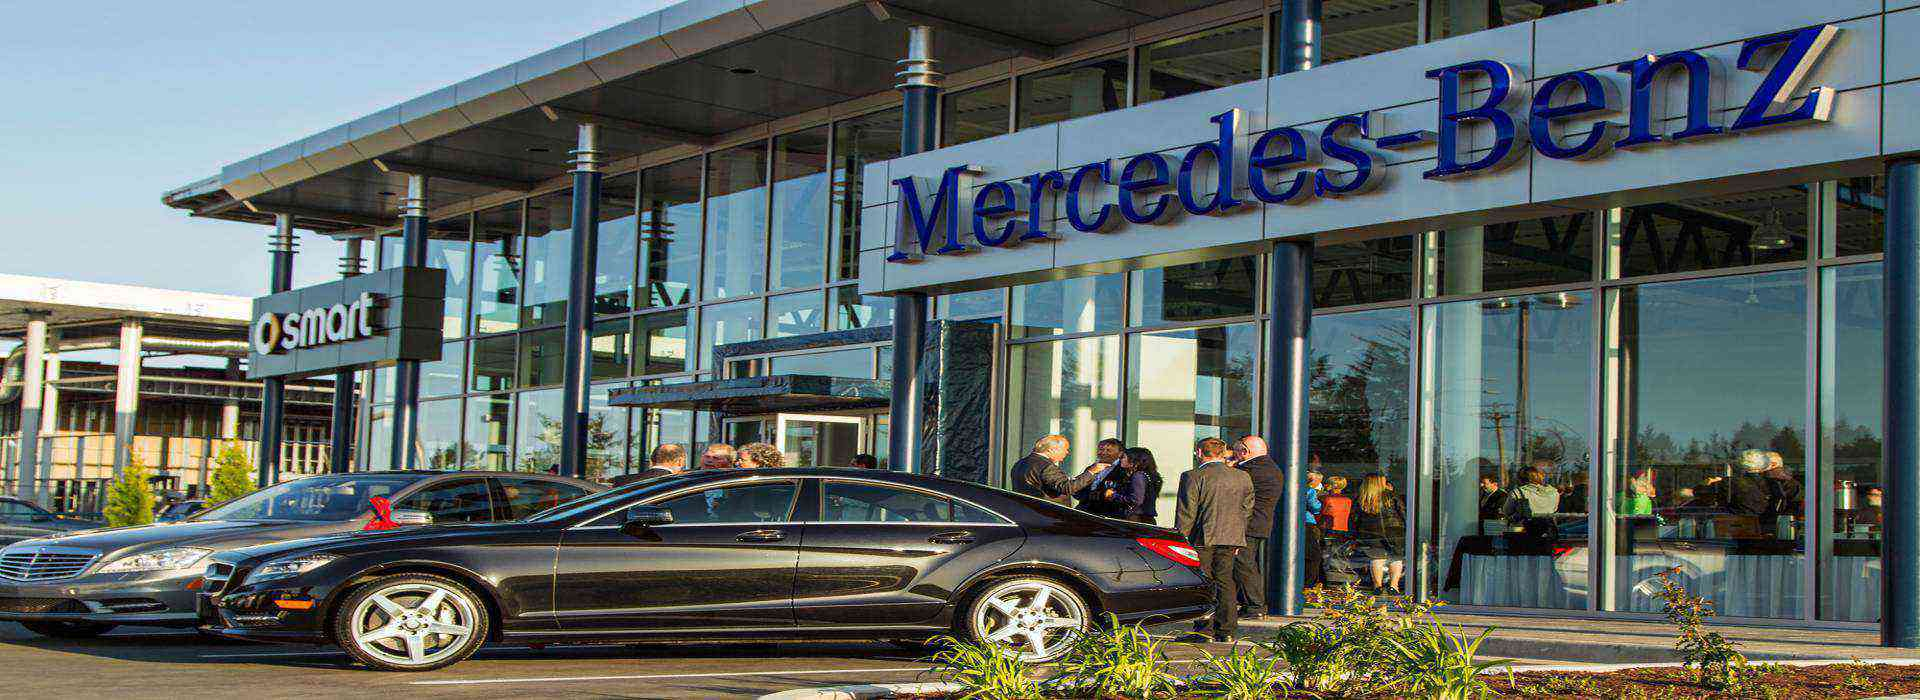 Mercedes benz indonesia customer care number address for Mercedes benz customer service email address